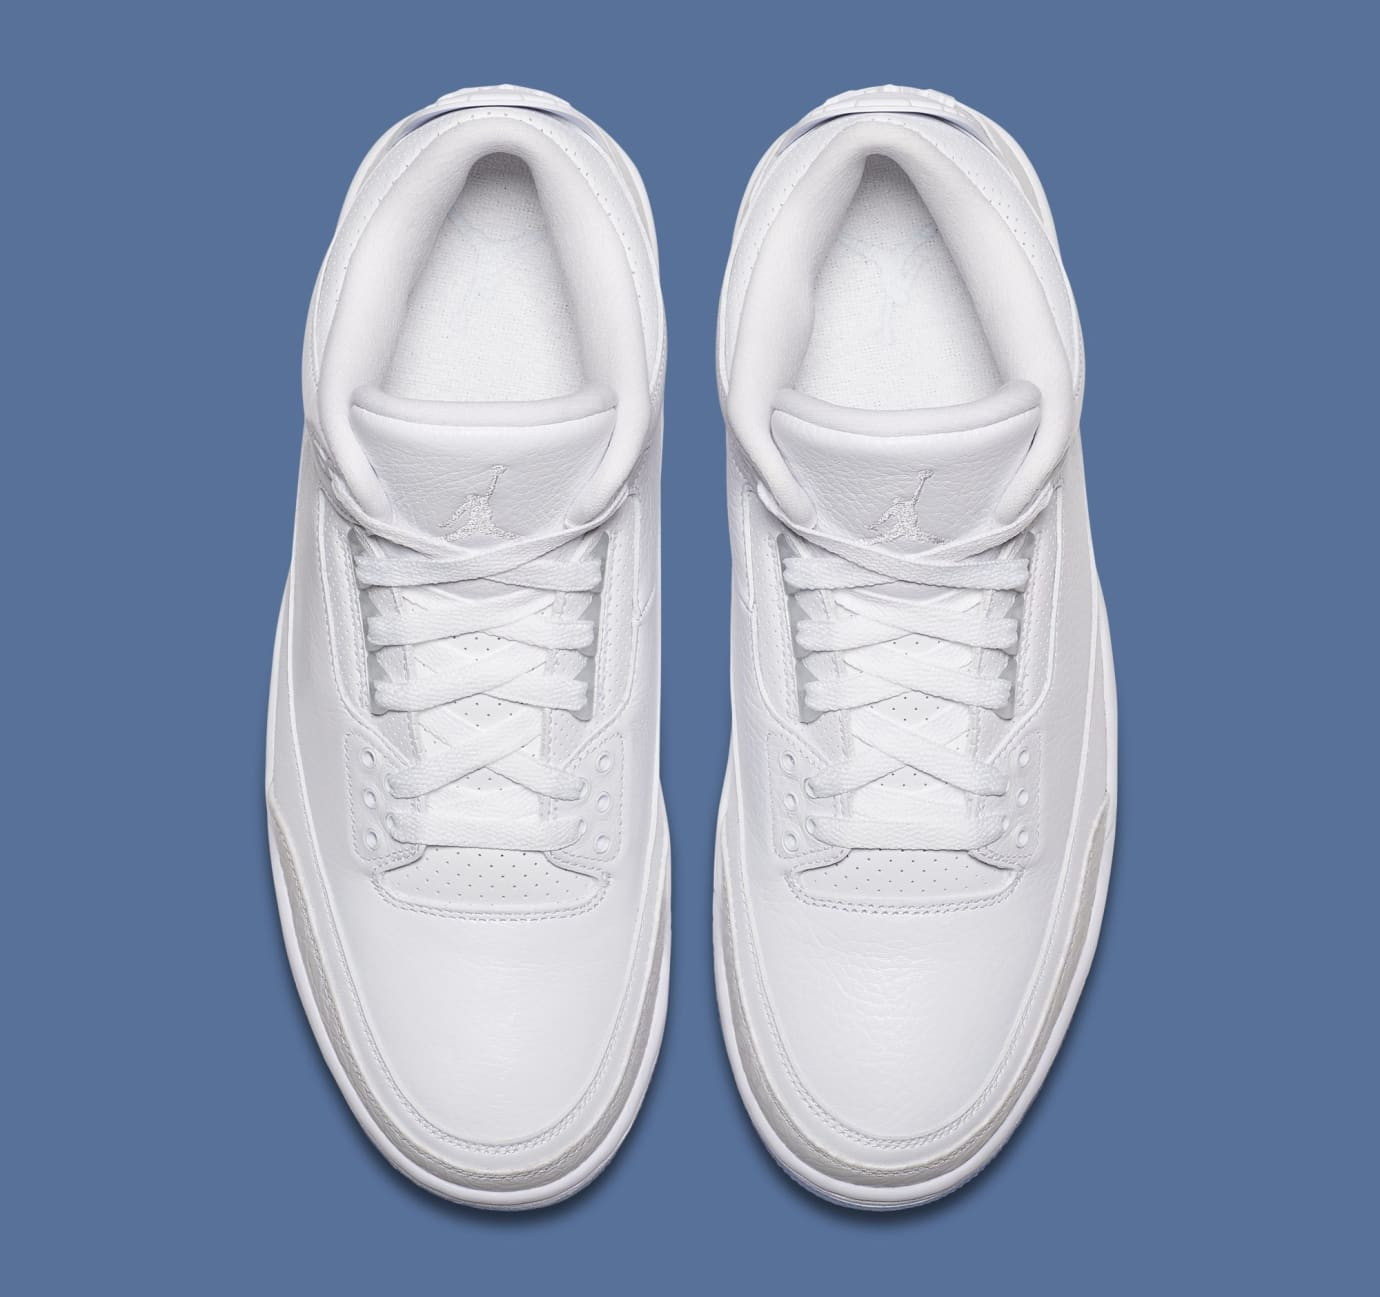 check out c3a85 0b37a Air Jordan 3 'Triple White' 136064-111 Release Date | Sole ...